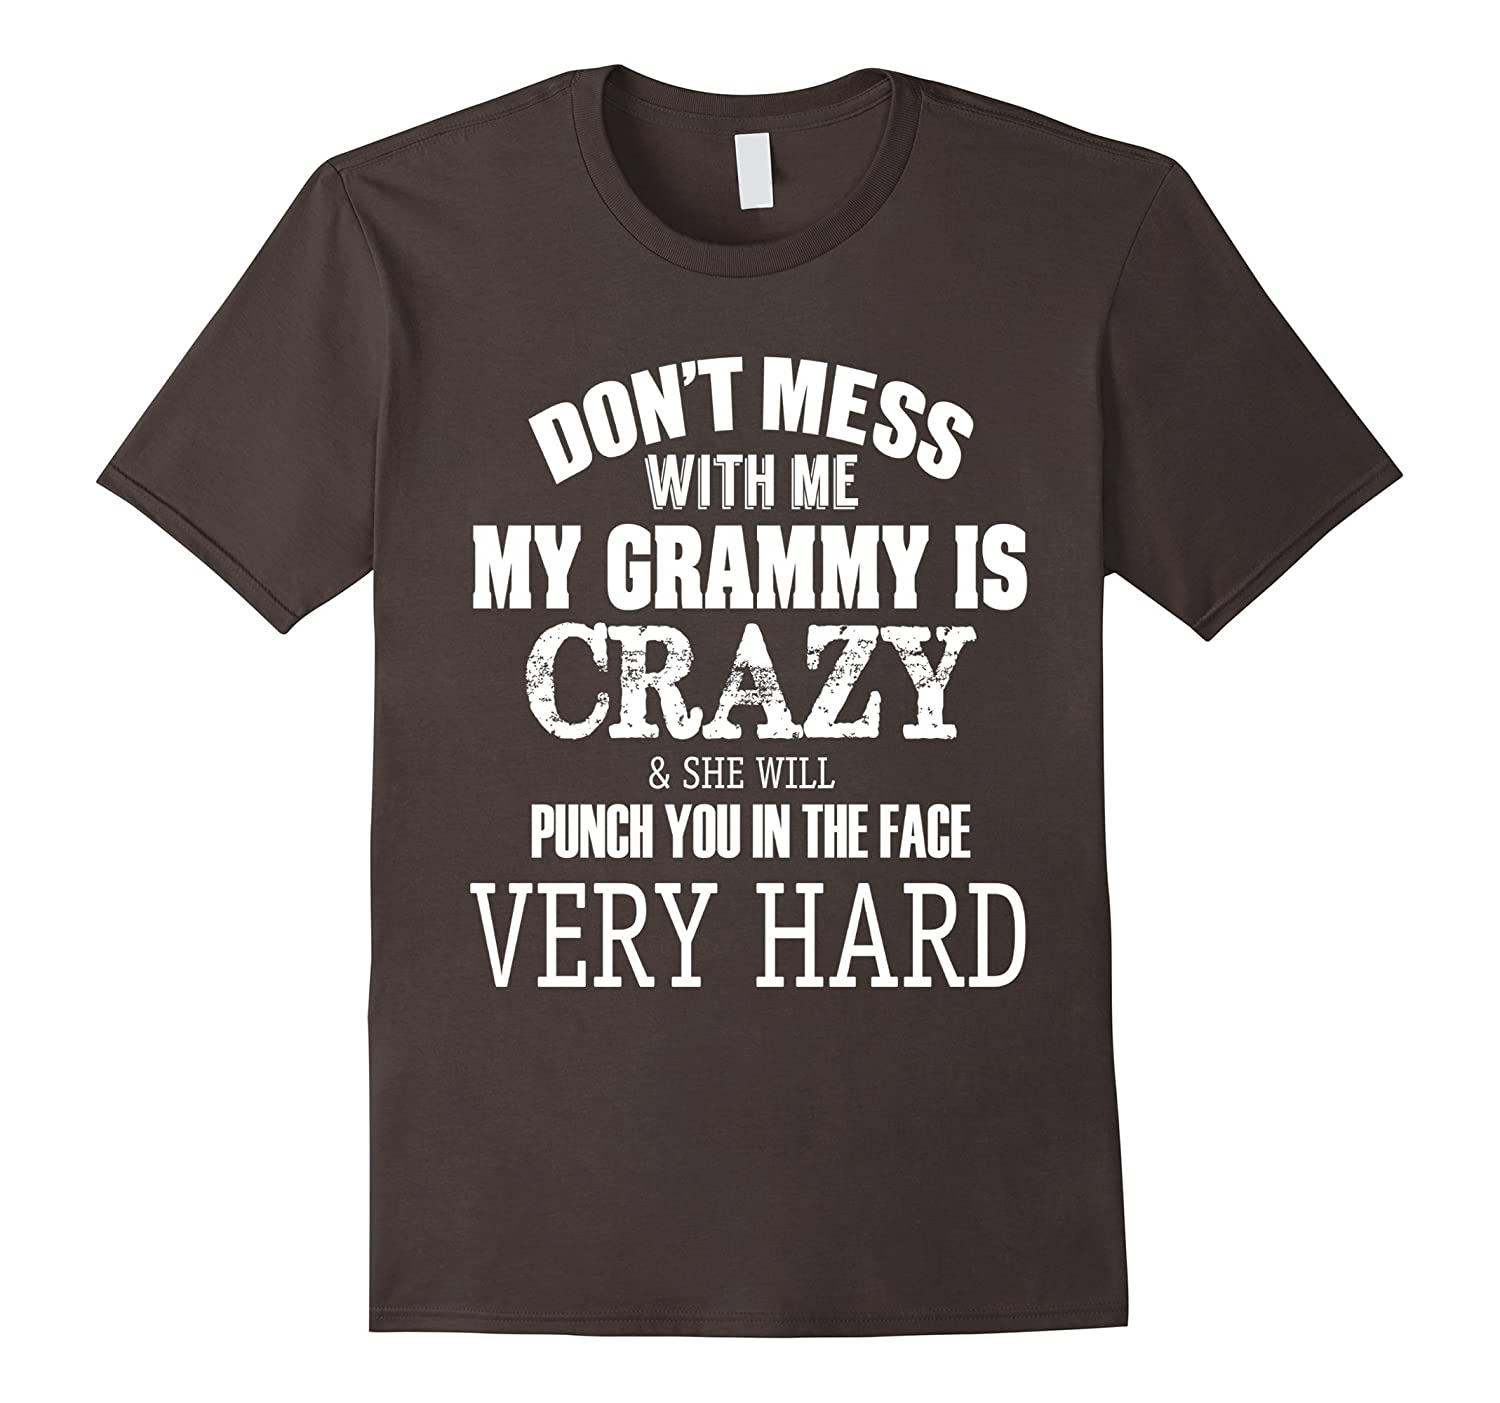 d29c03ddd Funny T-shirt Don't mess with me my GRAMMY is crazy T-shirt-ANZ ...